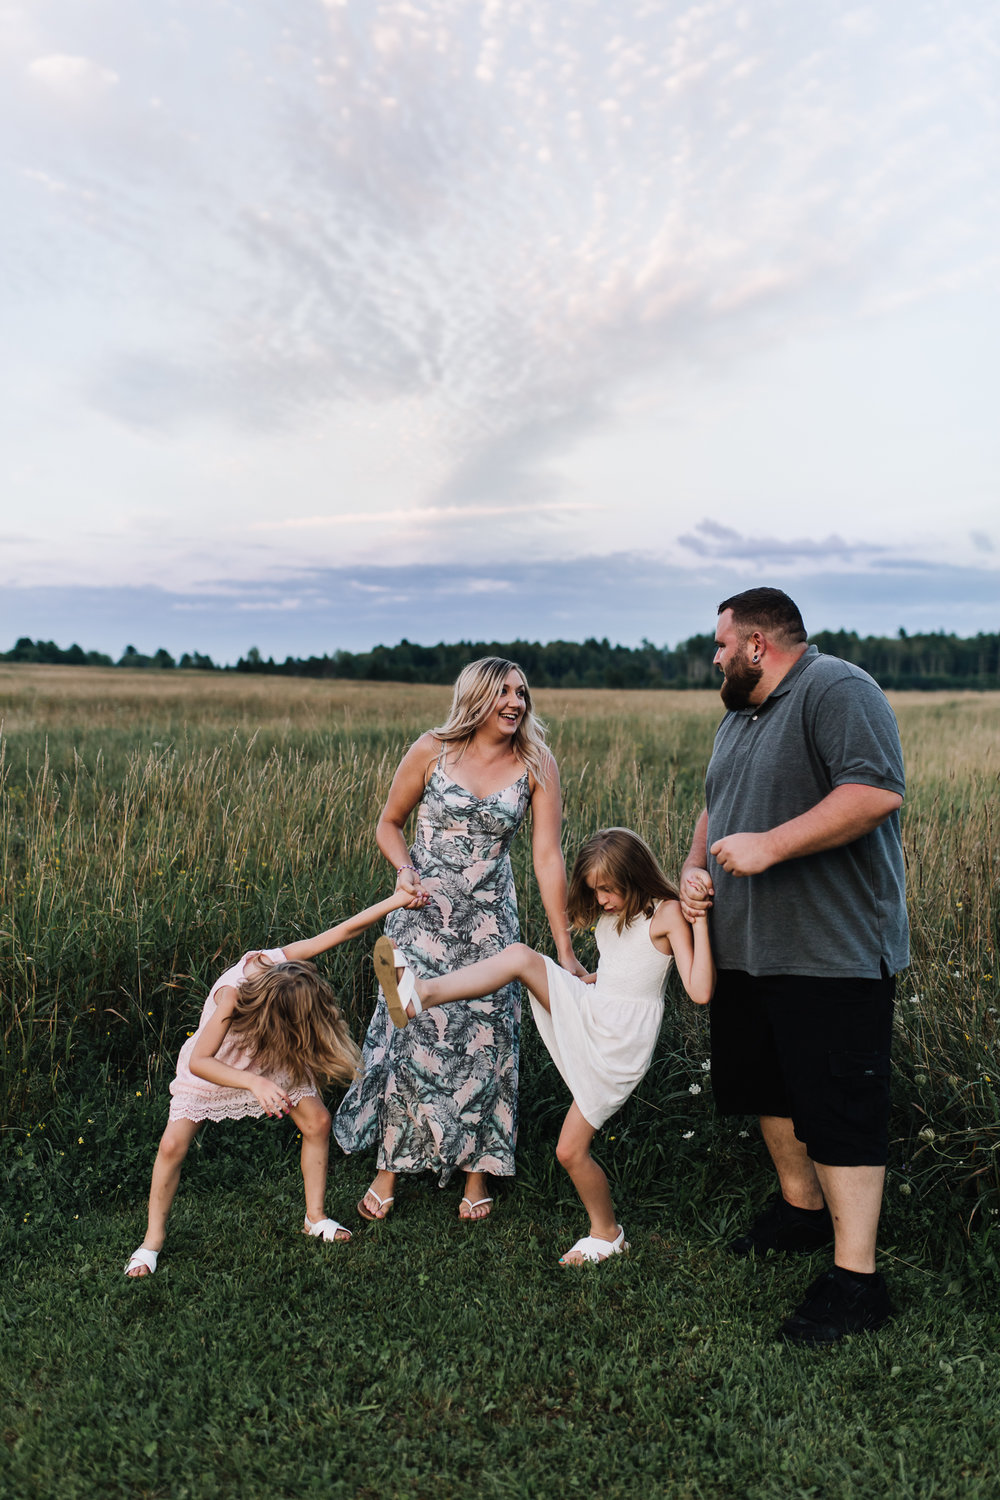 fun-family-photo-session-in-maine.jpg